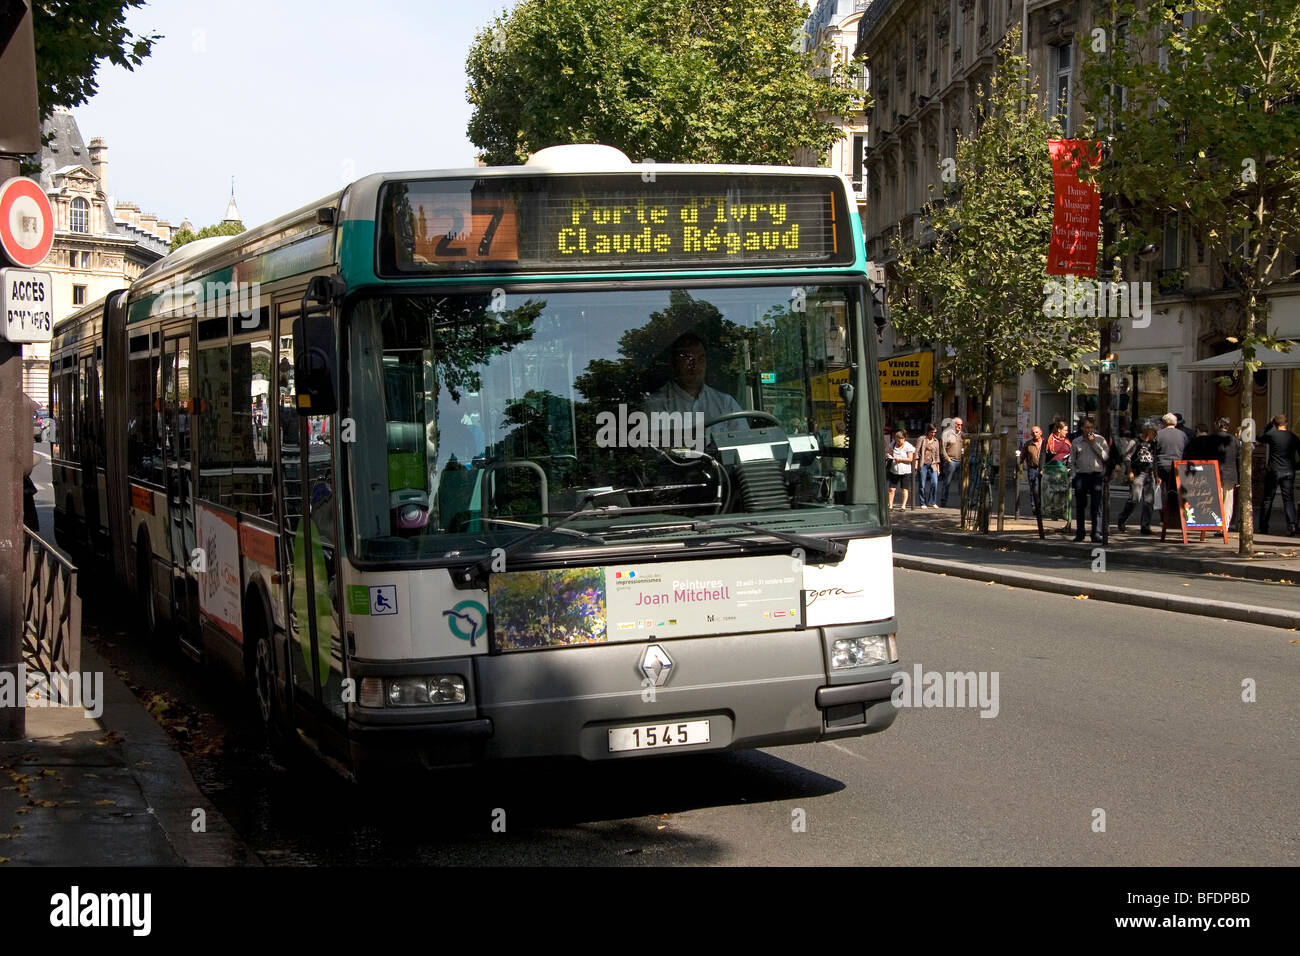 public transportation bus in paris france stock photo royalty free image 26733153 alamy. Black Bedroom Furniture Sets. Home Design Ideas